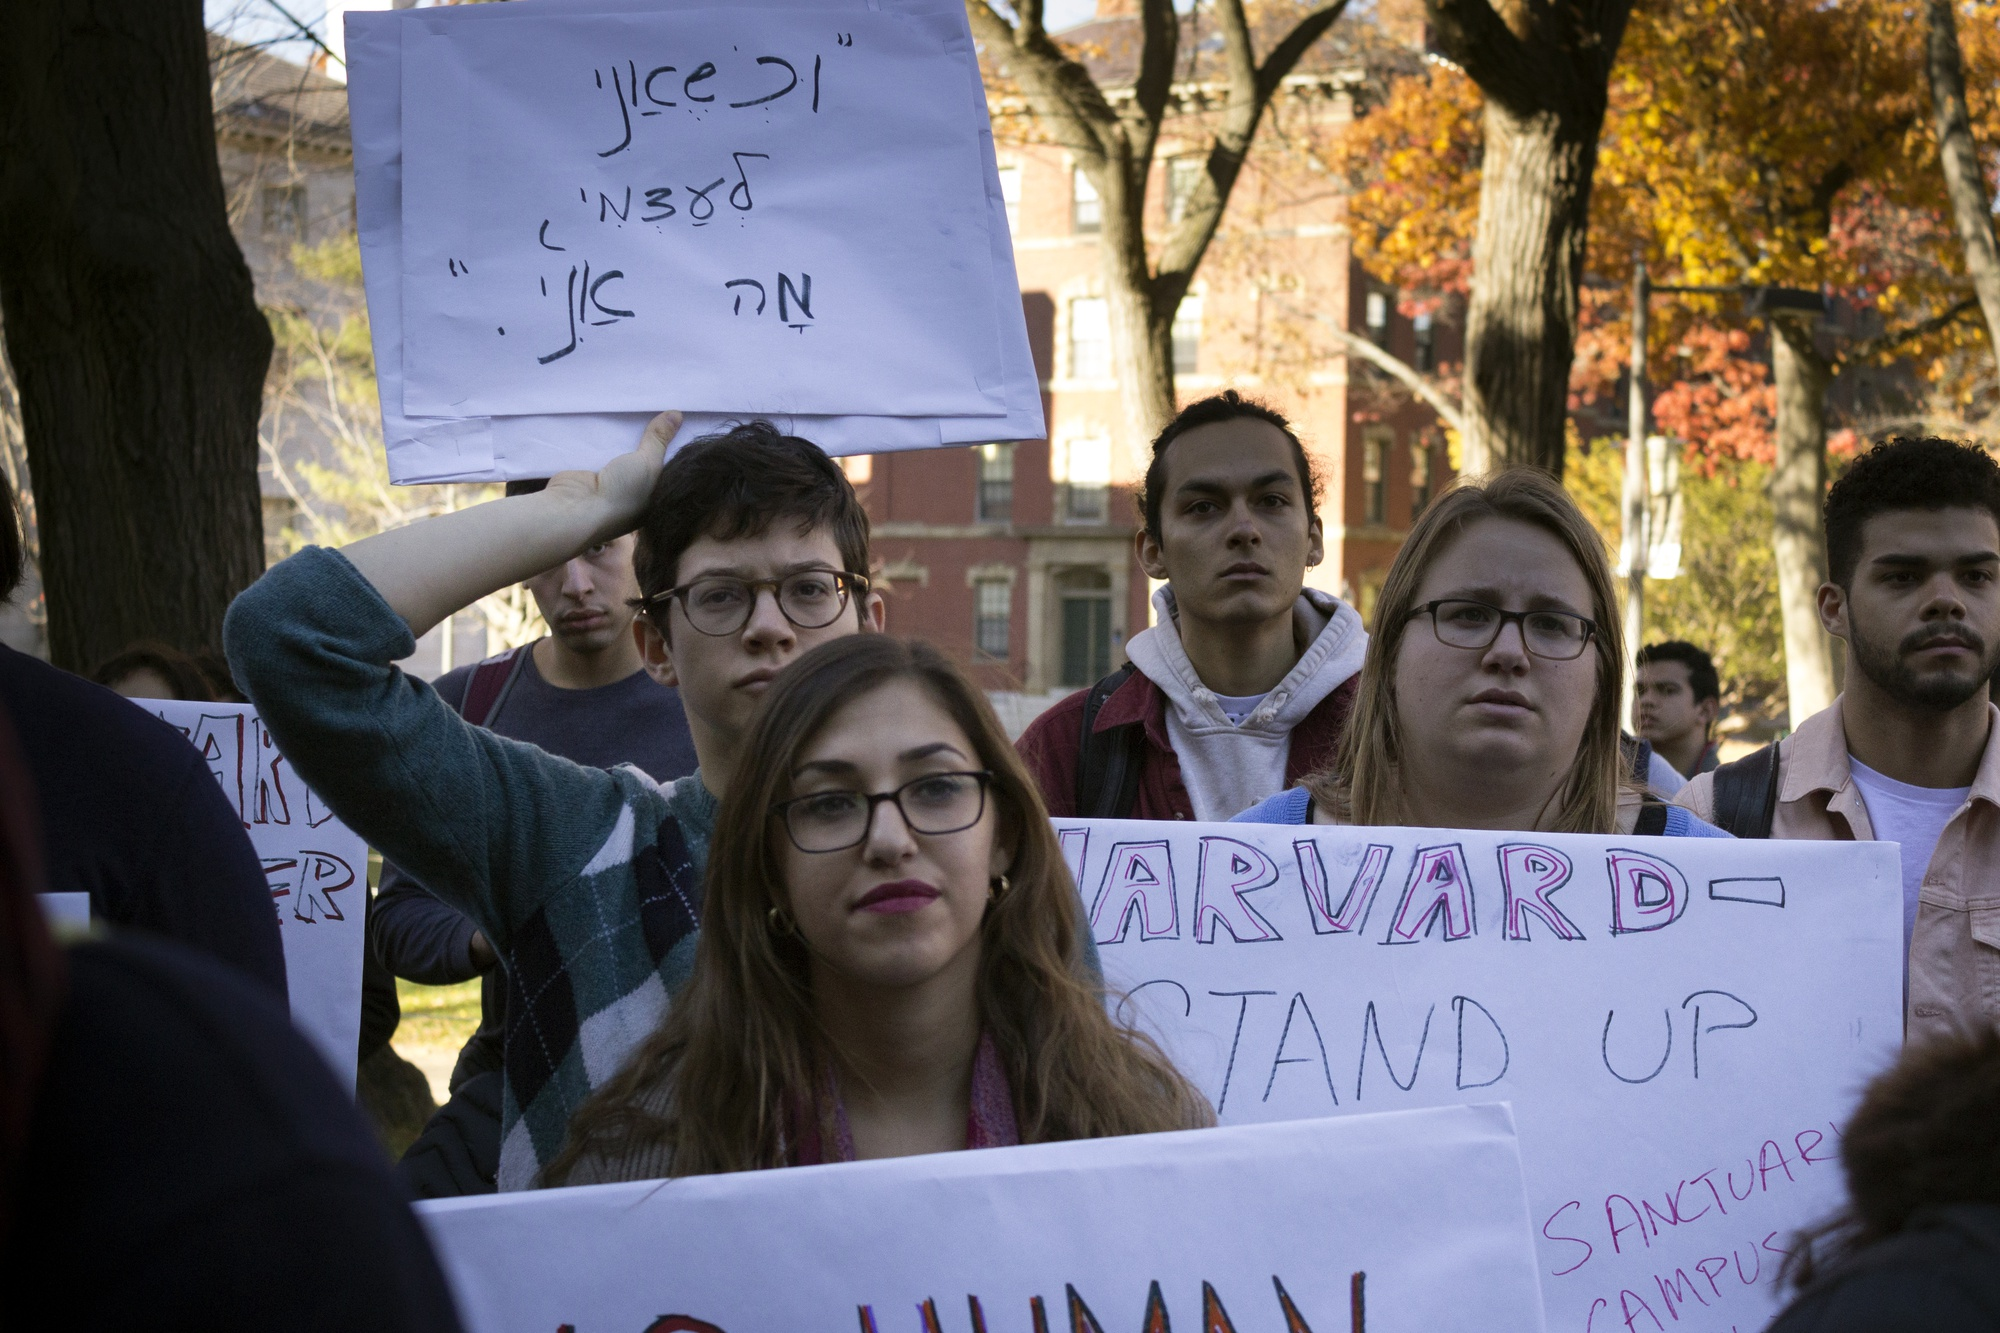 More than 100 supporters gather on the steps of Widener Library to advocate for the defense of undocumented students at Harvard.